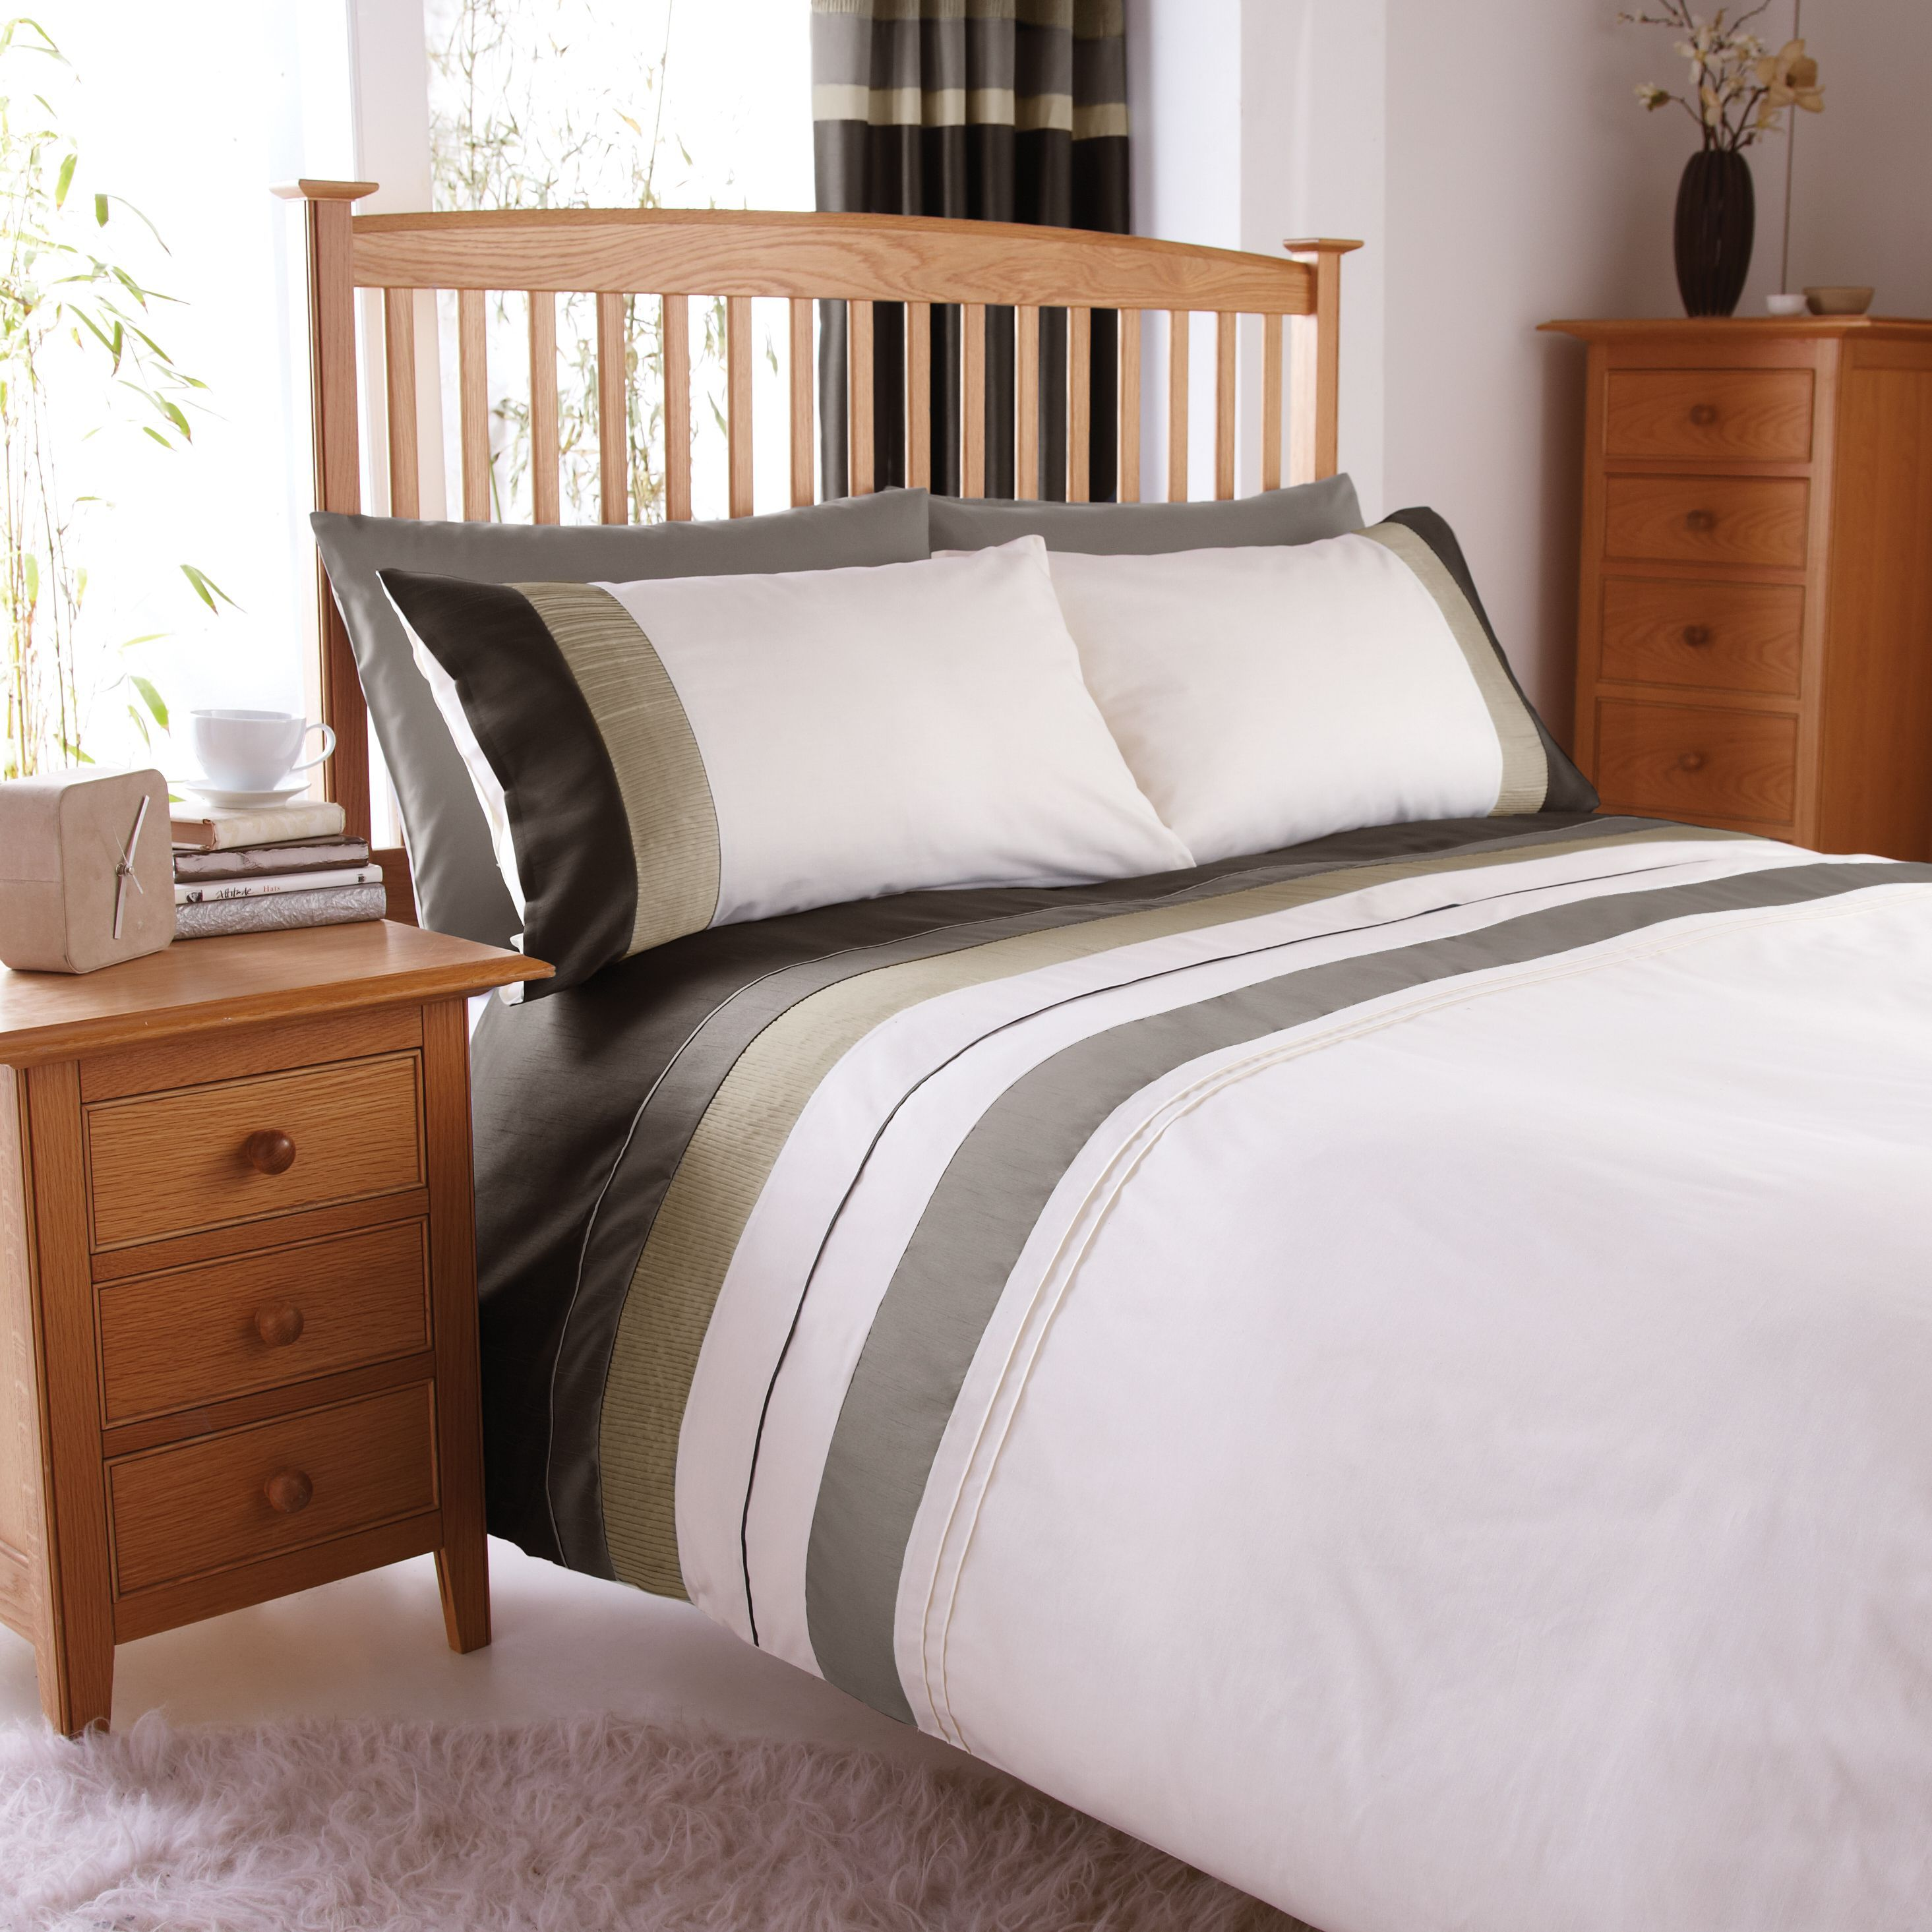 Chartwell Metro Striped Cream Double Bed cover set